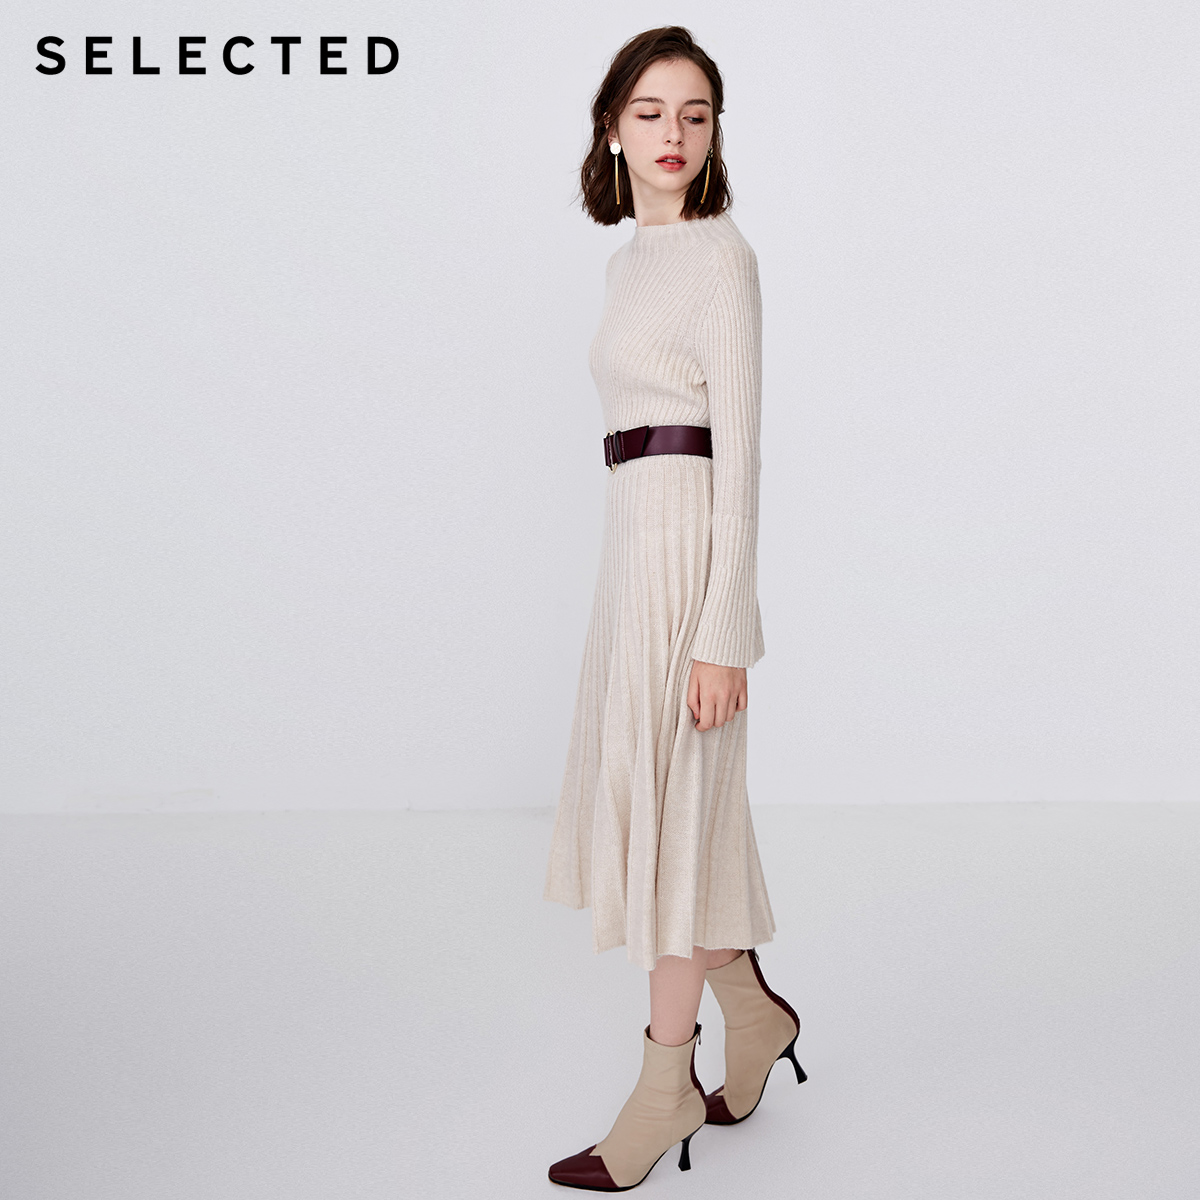 SELECTED Woman Wool Jacquard Knitted Mid length Dress  S  418446505-in Dresses from Women's Clothing    3